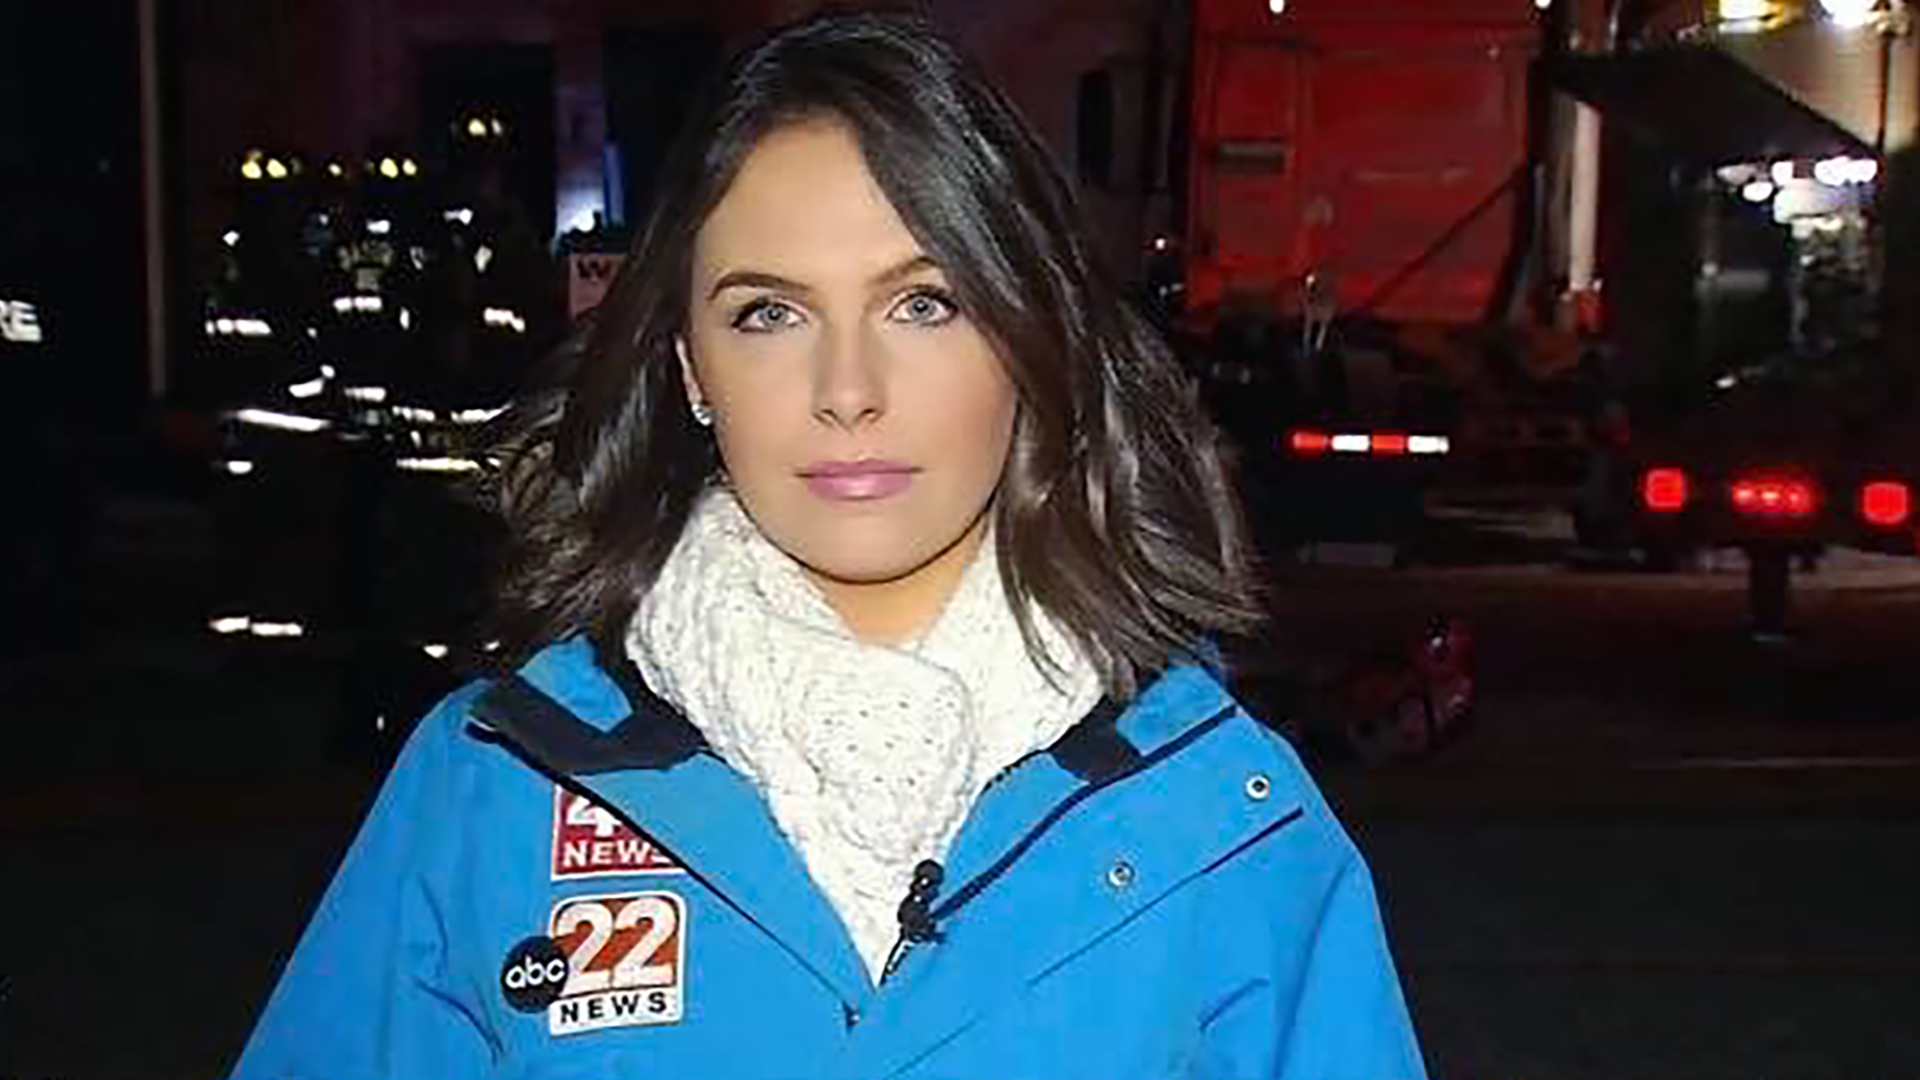 news reporter in front of camera